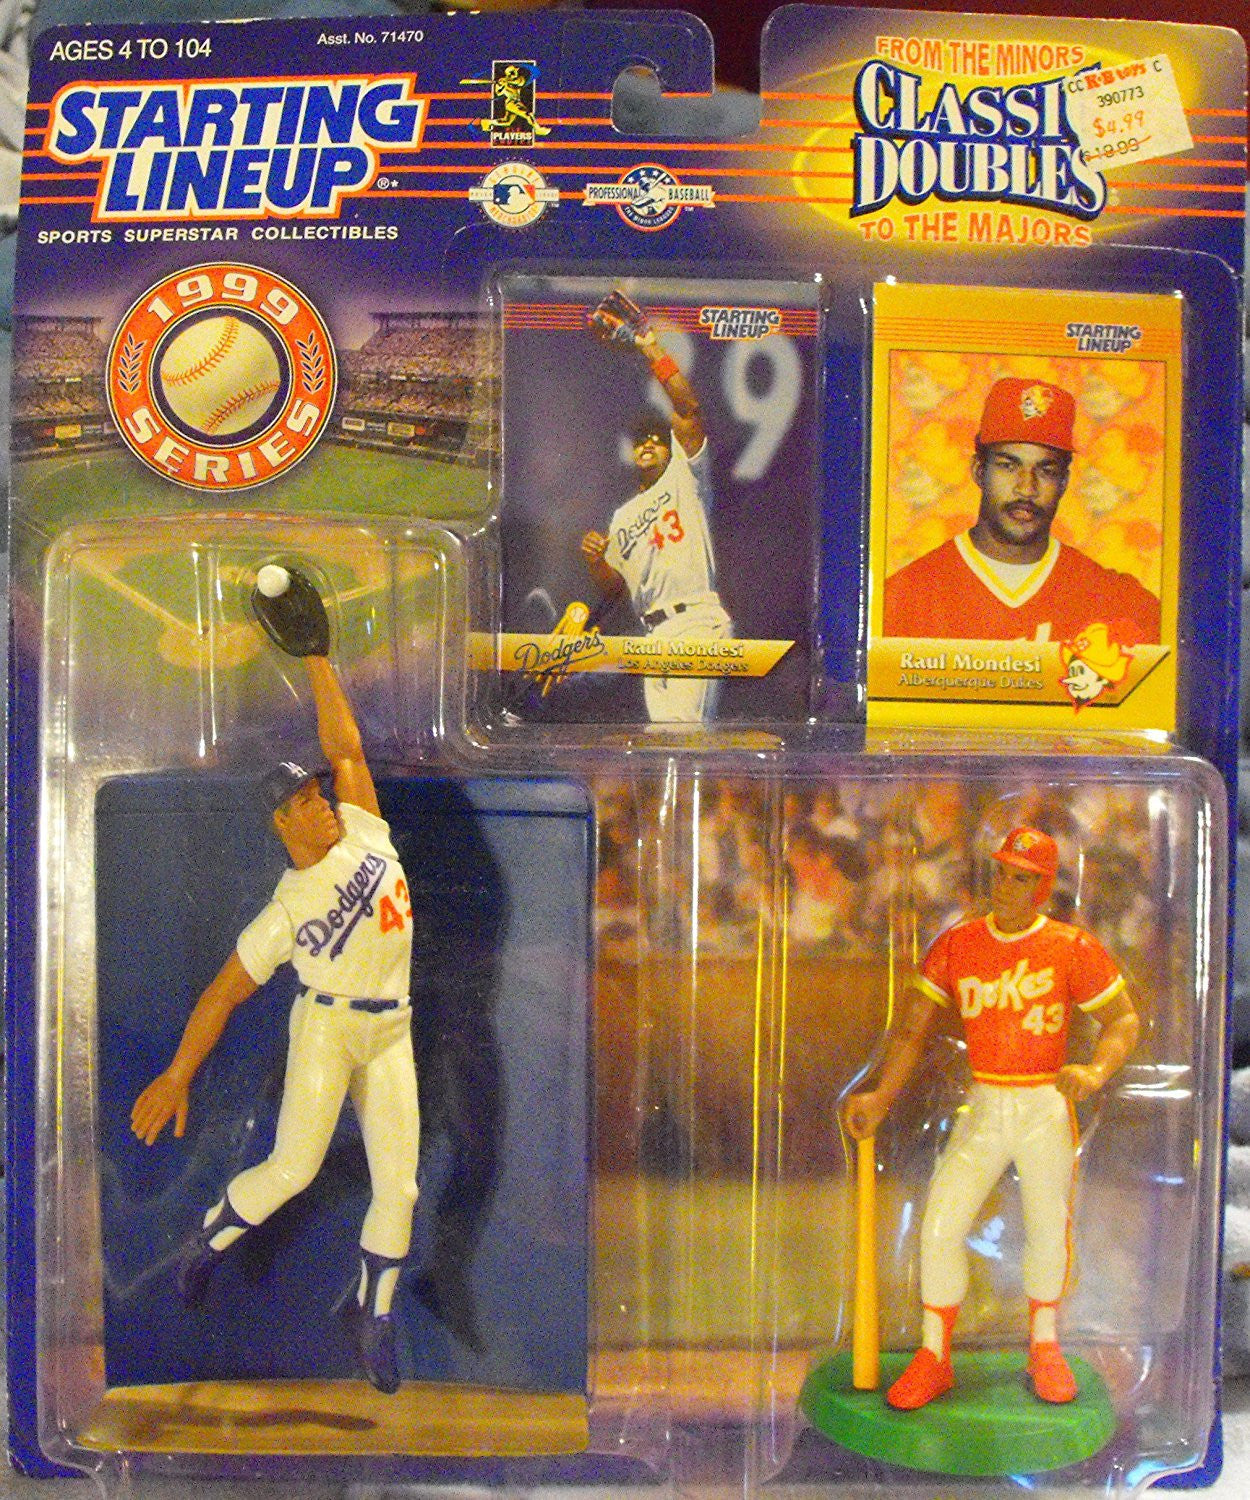 Starting Lineup Classic Doubles Raul Mondesi